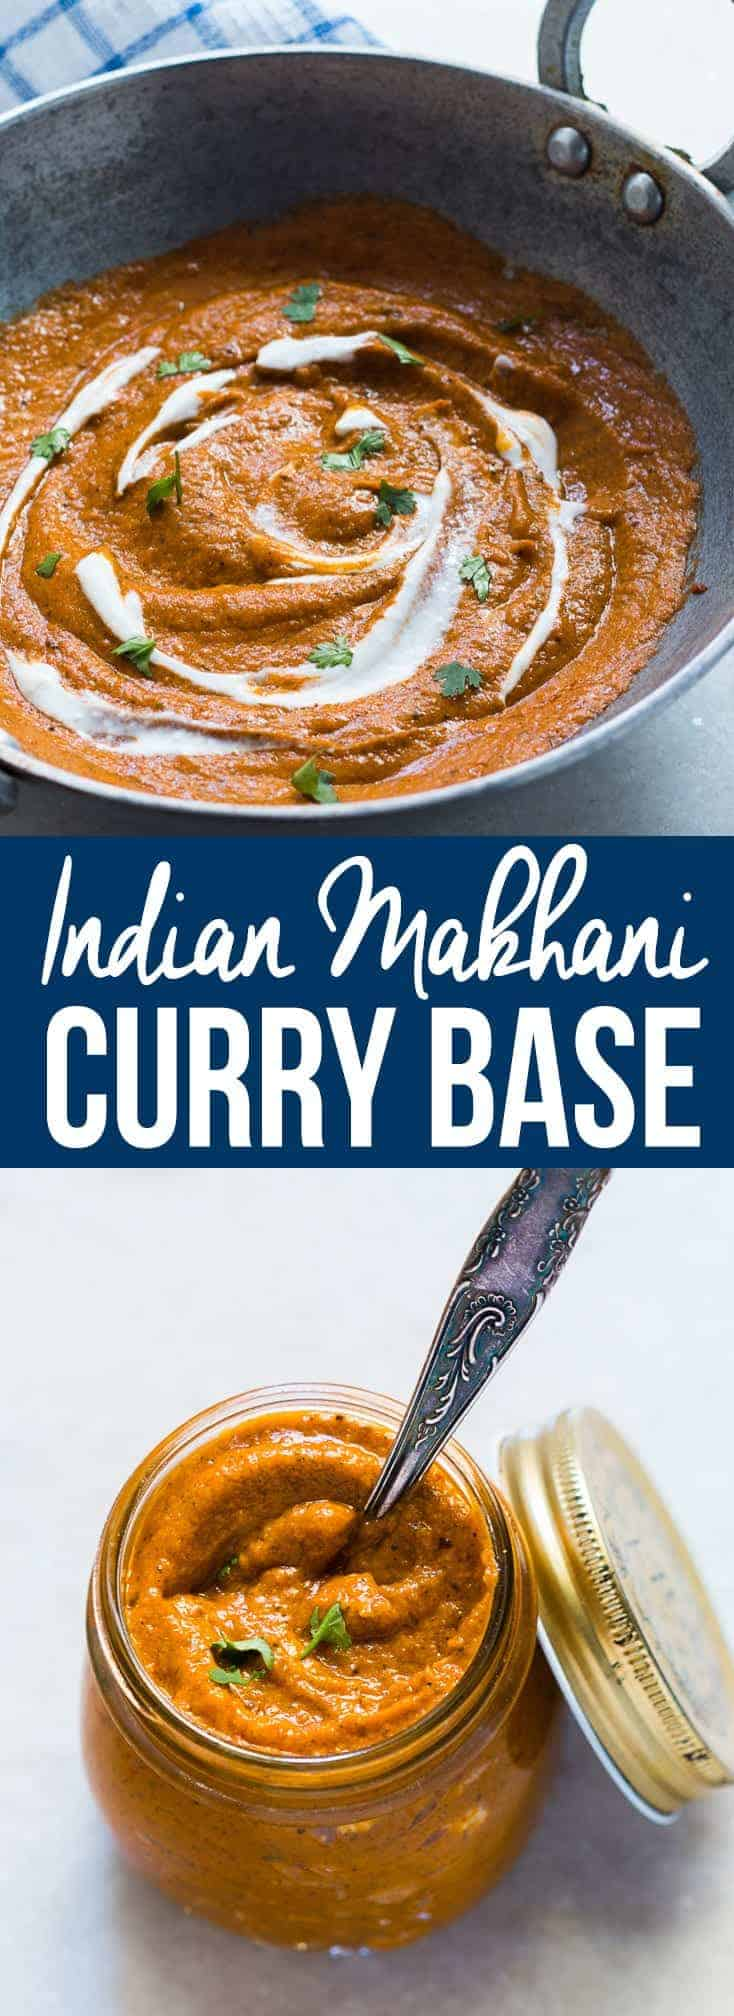 Learn how to make Indian Makhani Gravy (Curry) that is freezer-friendly and can be stored in jars or zip-locks for later use. The gravy or curry is the backbone of a lot of Indian dishes and this recipe covers a variety of them - paneer makhani, murgh (chicken) makhani, paneer butter masala, chicken butter masala, veg makhani or even egg makhani. It has no added food coloring and gives a restaurant-style taste! #myfoodstory #recipe #indian #curry #gravy #howtomake #freeze